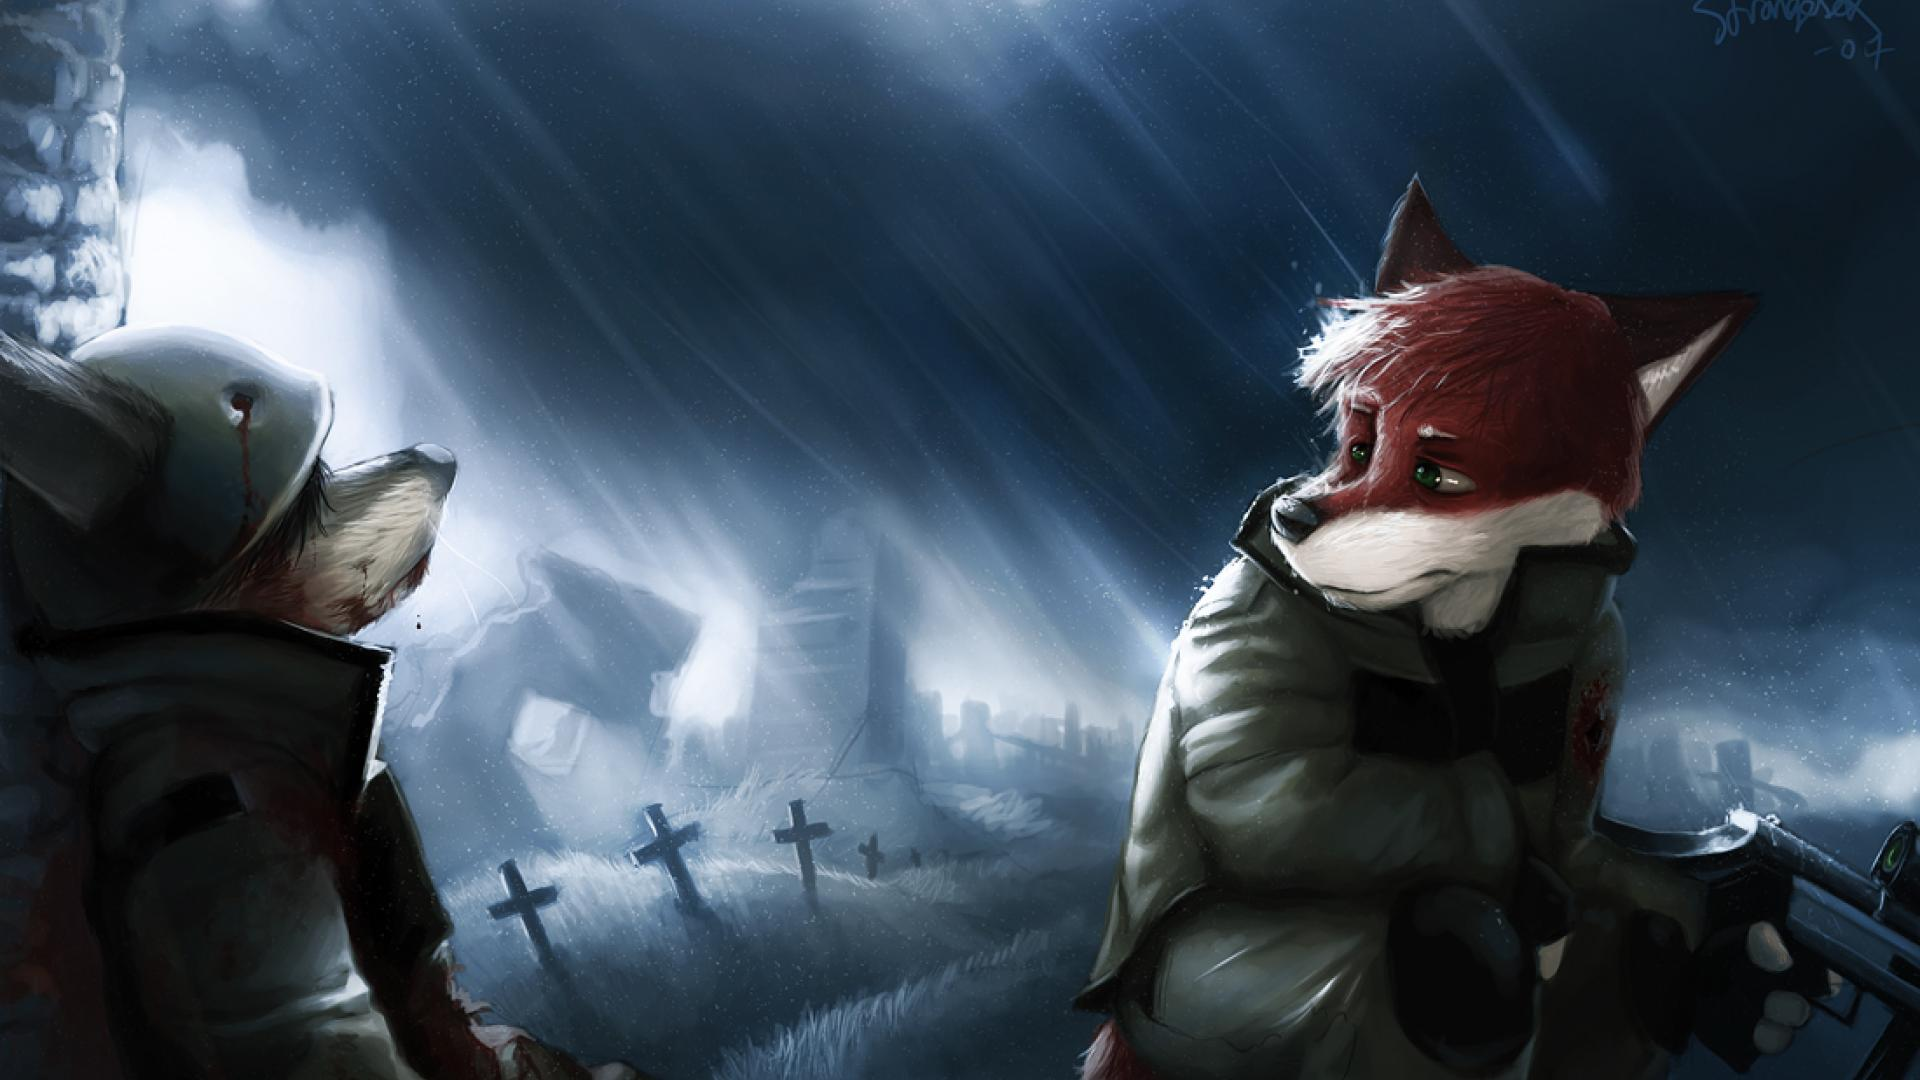 Furry Wallpaper 177871 High Quality And Resolution Furry Wolf 1920x1080 Download Hd Wallpaper Wallpapertip